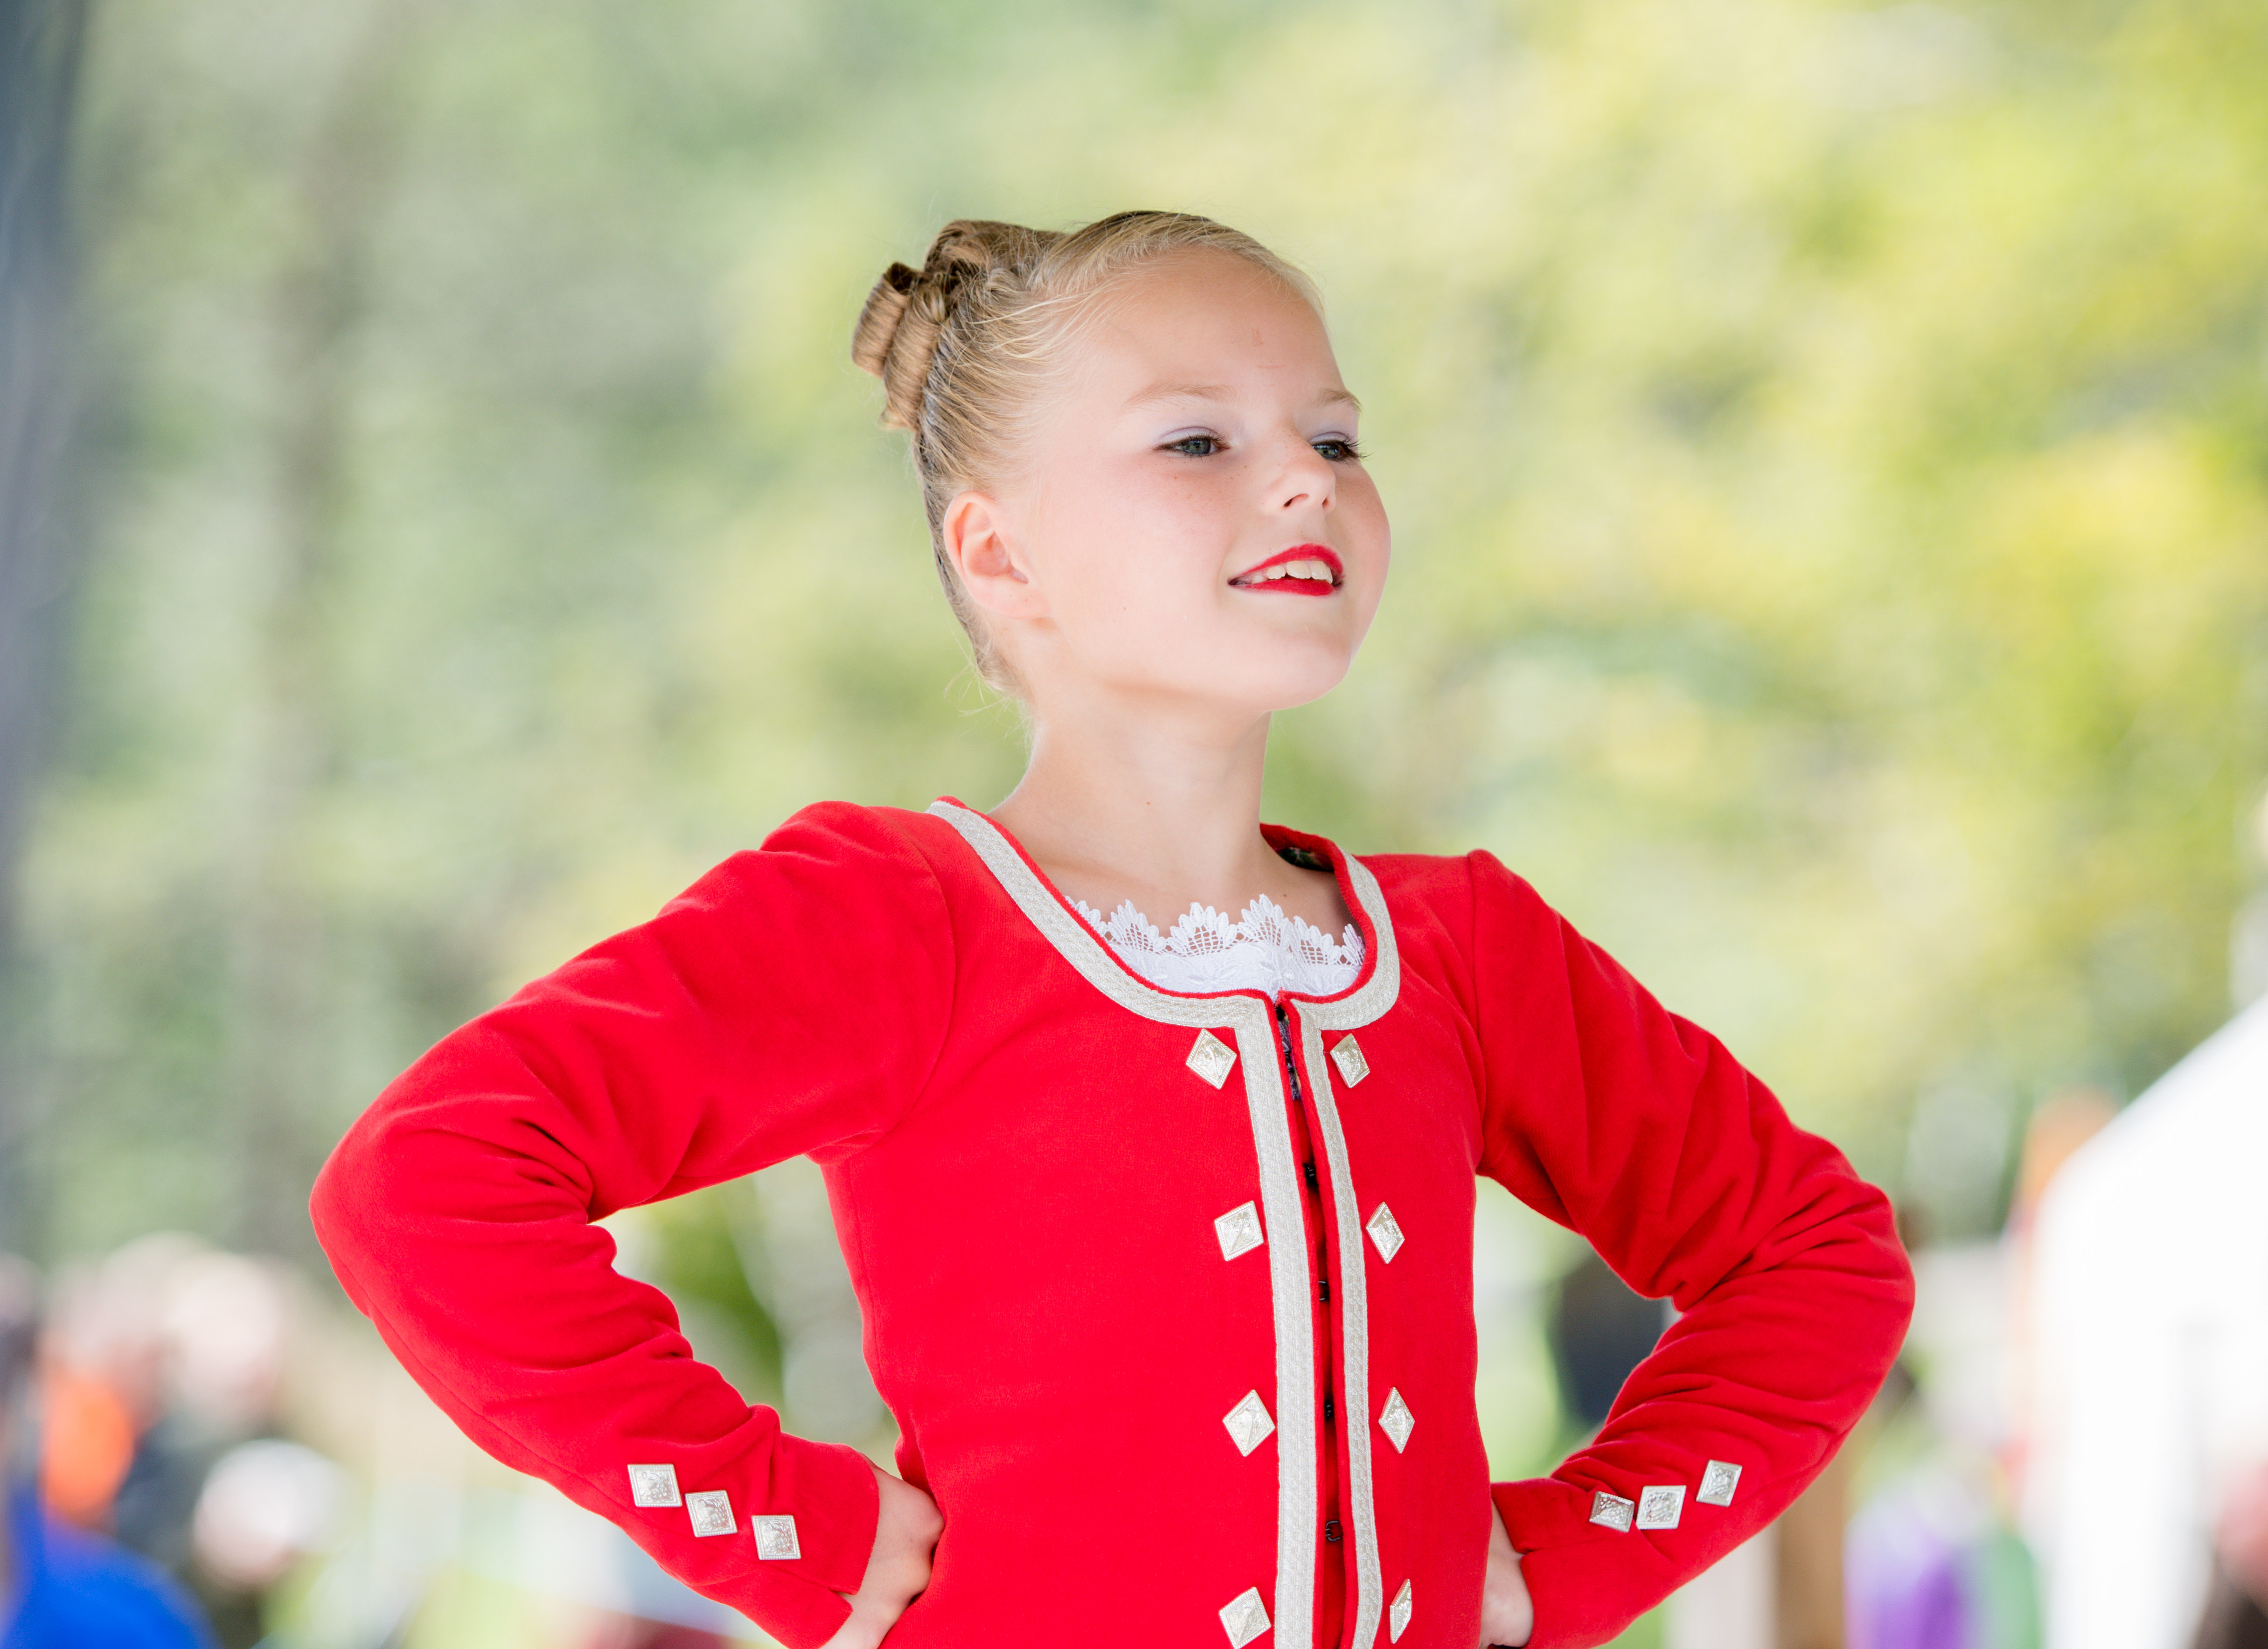 Eilidh Smith age 9 from Huntly competes in the Highland fling Scottish country dancing